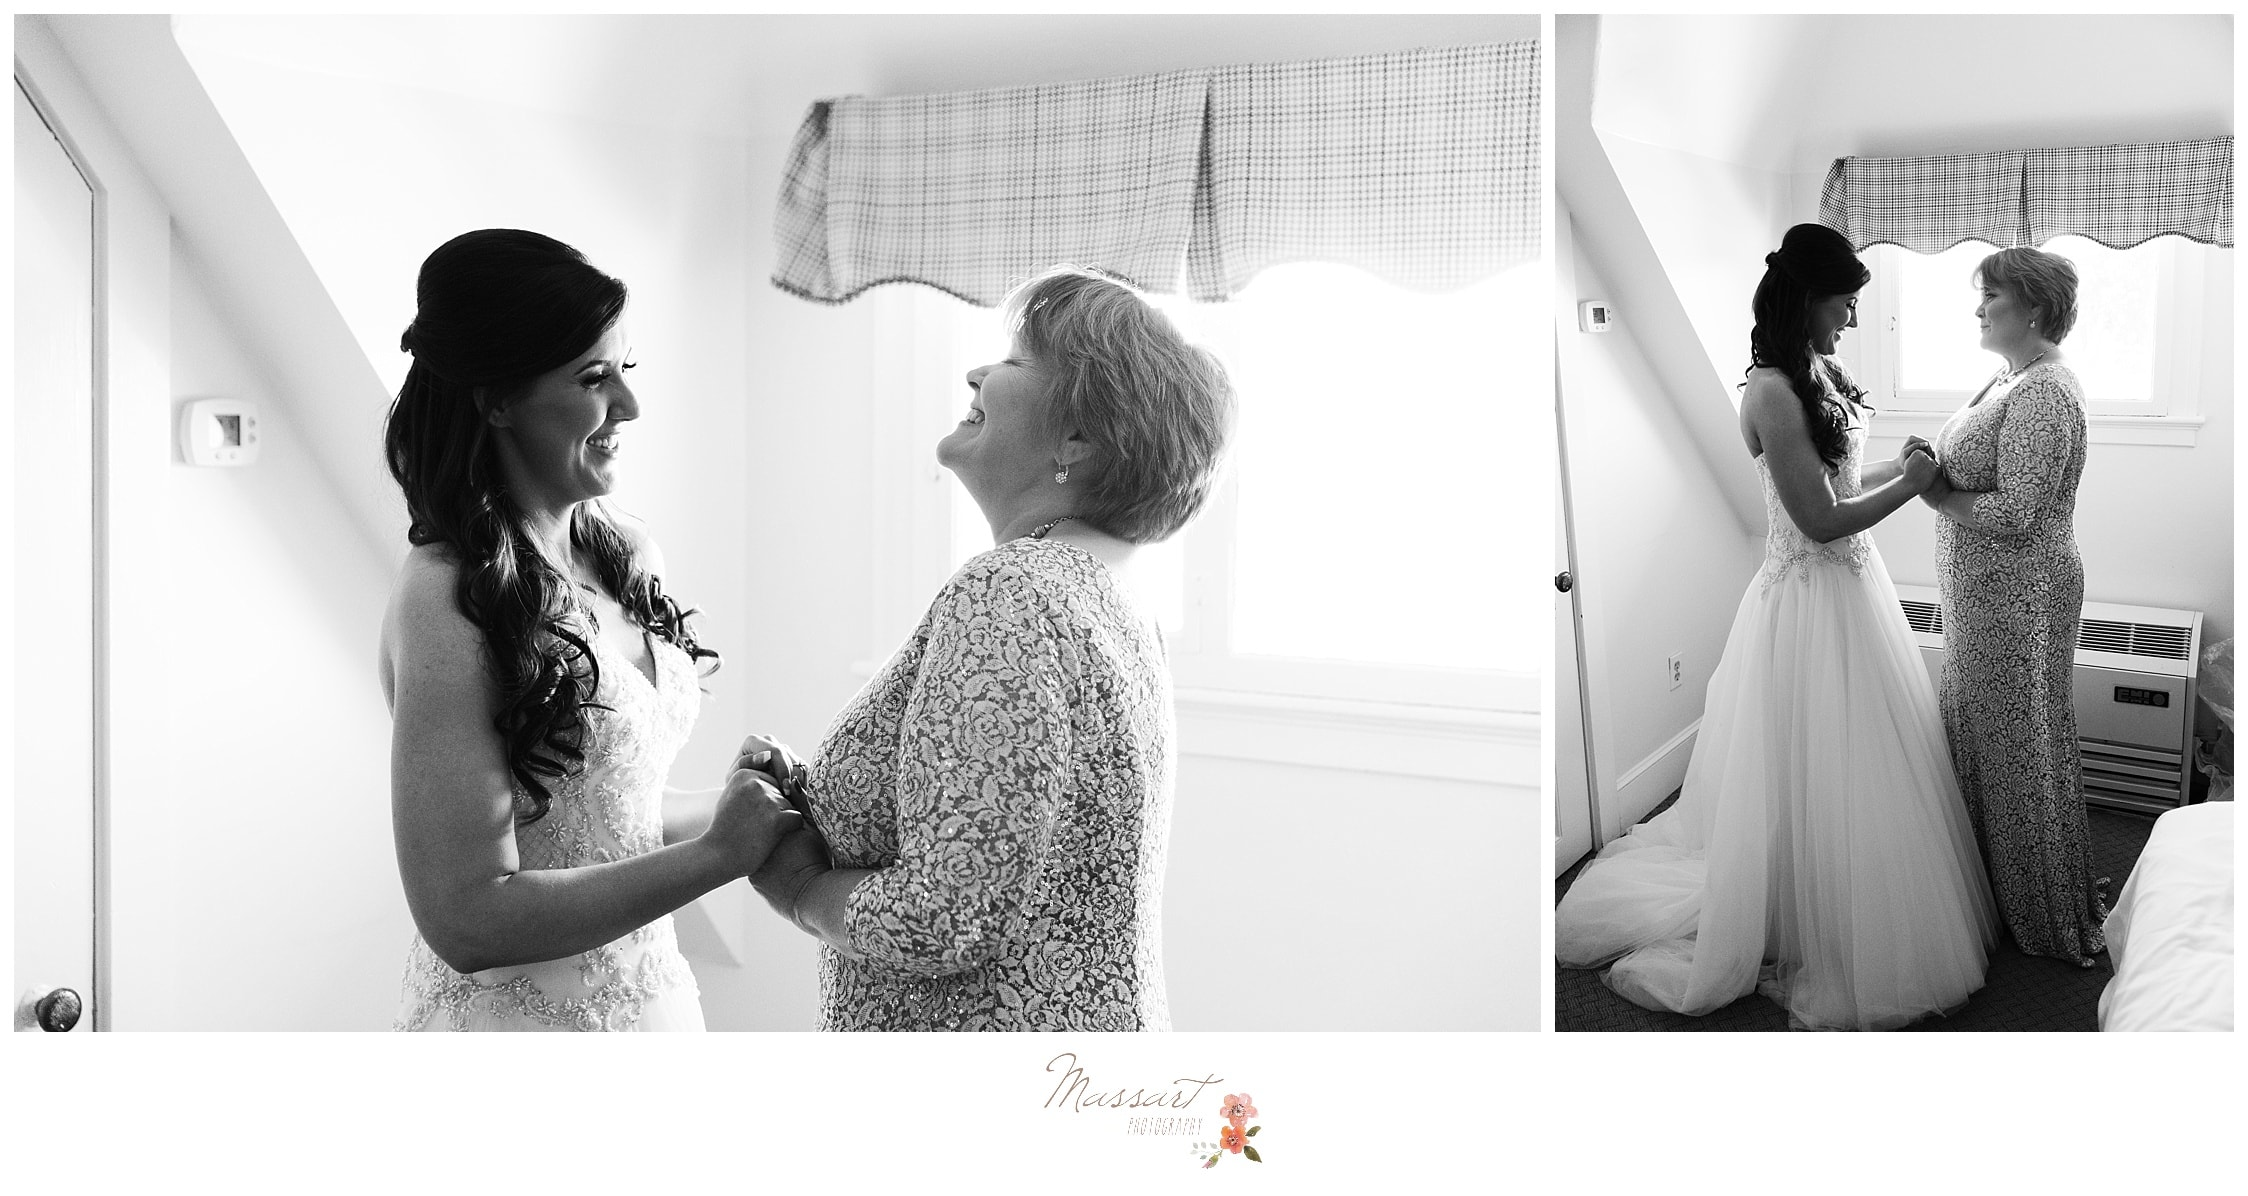 The bride and her mom share an emotional moment together as the bride finishes getting ready for her wedding day photographed by Massart Photography RI